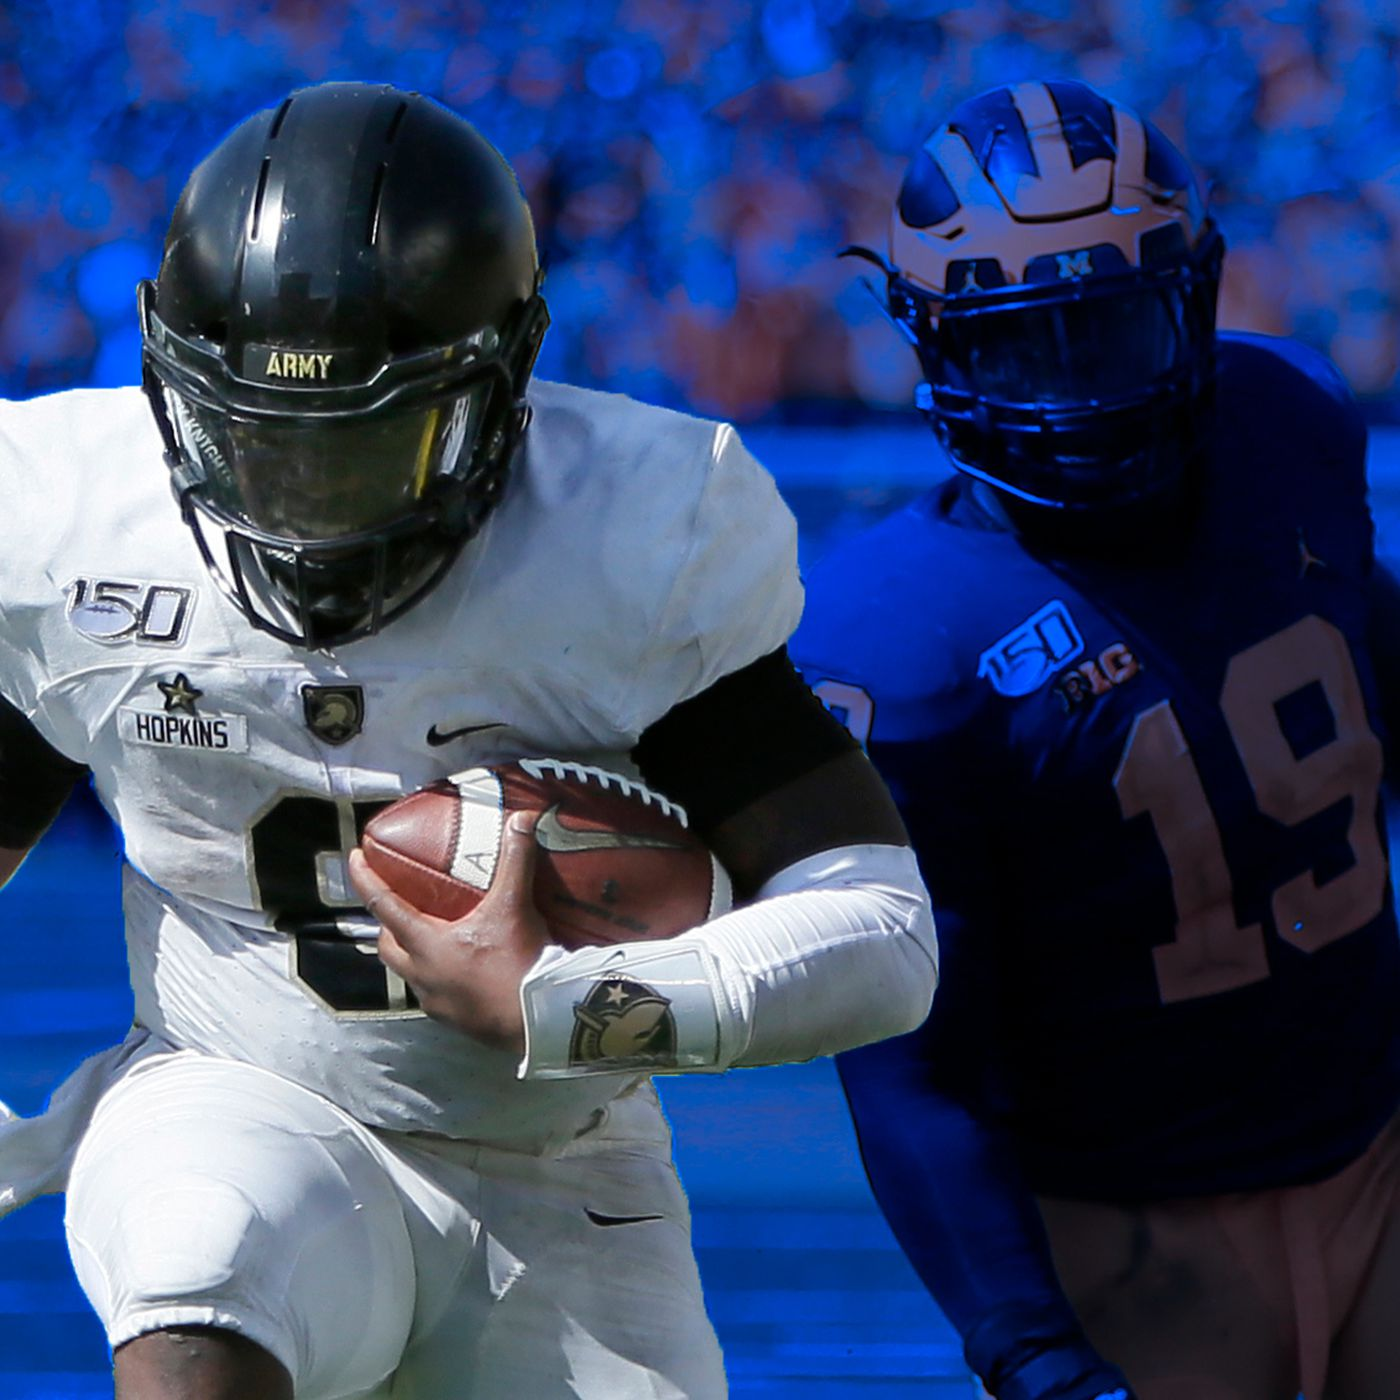 Army, Navy, Air Force: football's best big Vegas underdogs